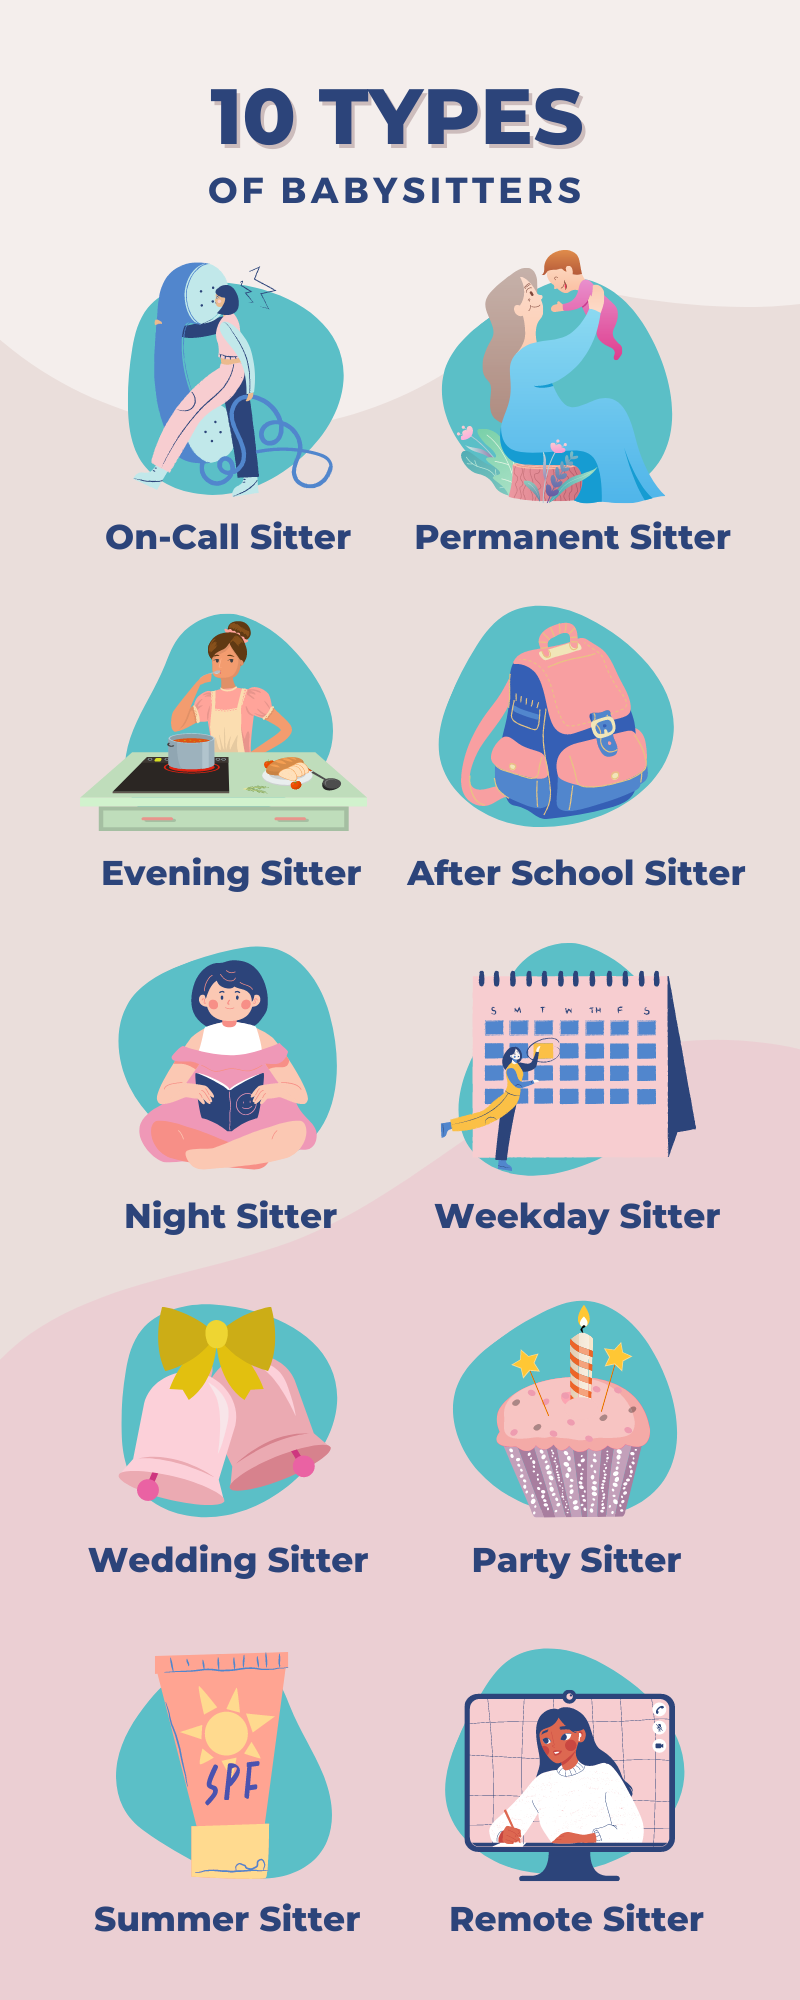 10 types of babysitters